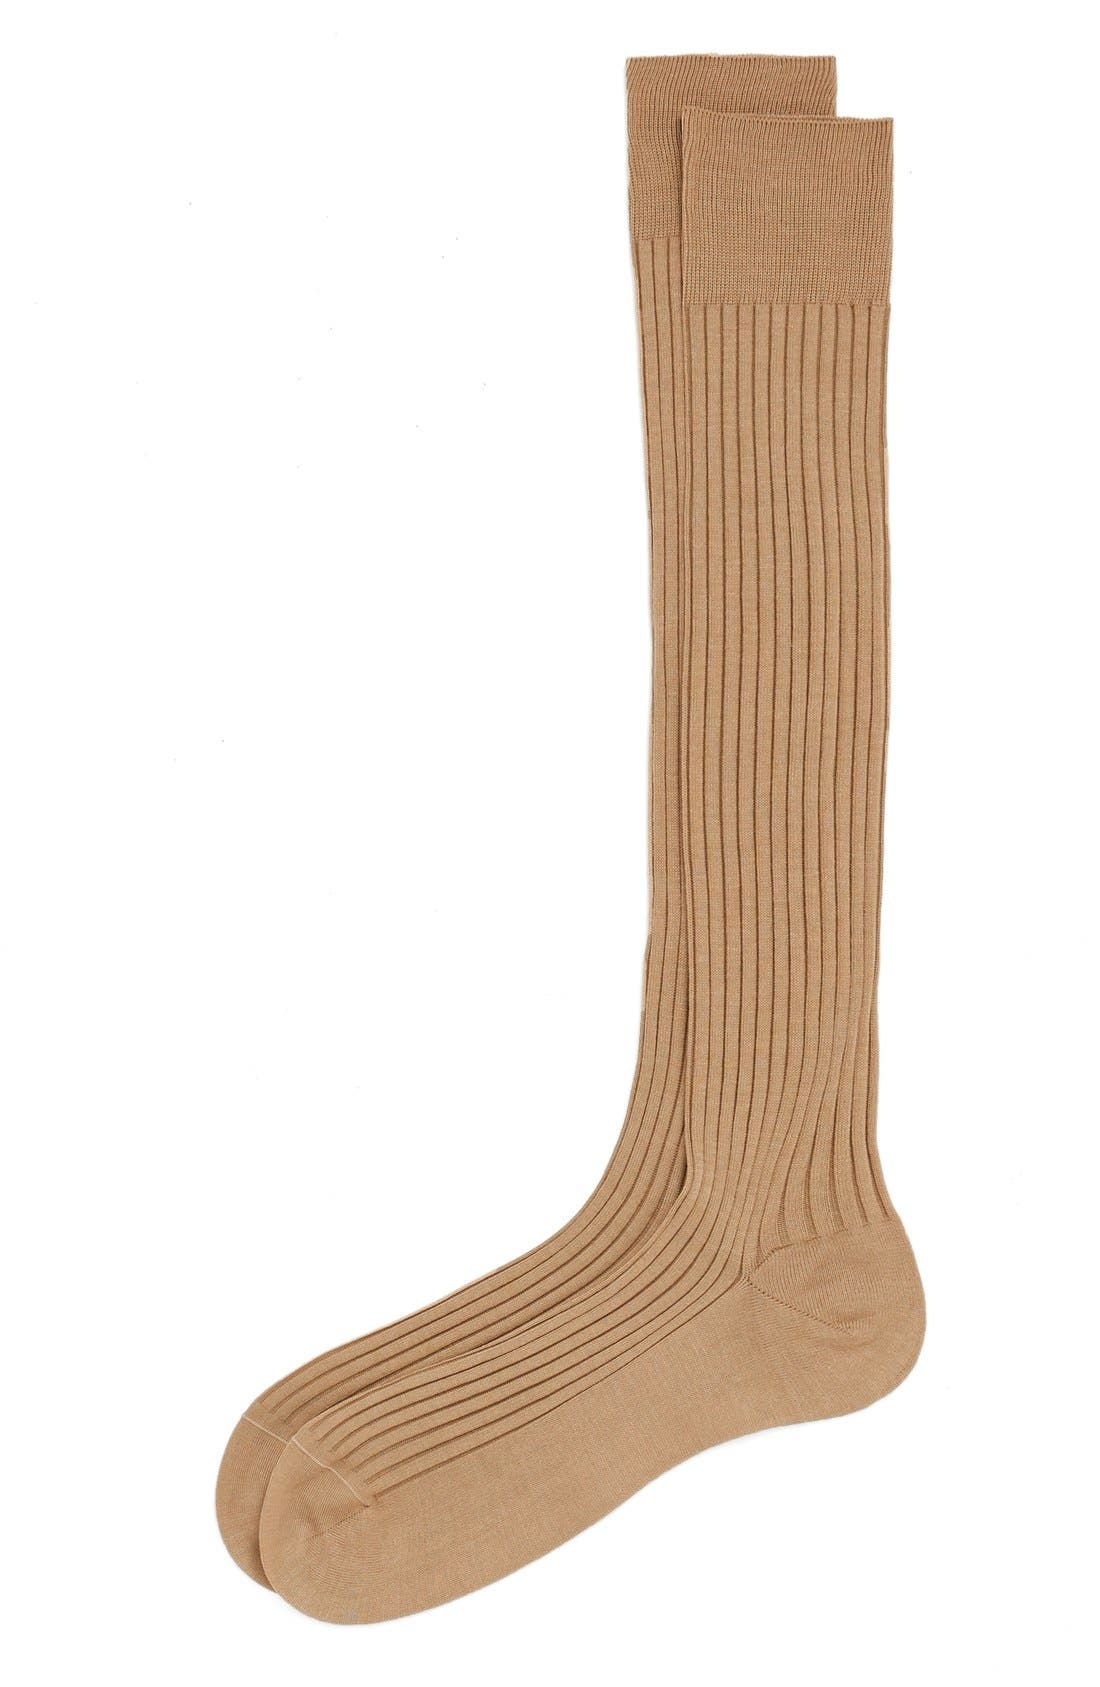 Main Image - Pantherella Cotton Lisle Blend Over the Calf Socks